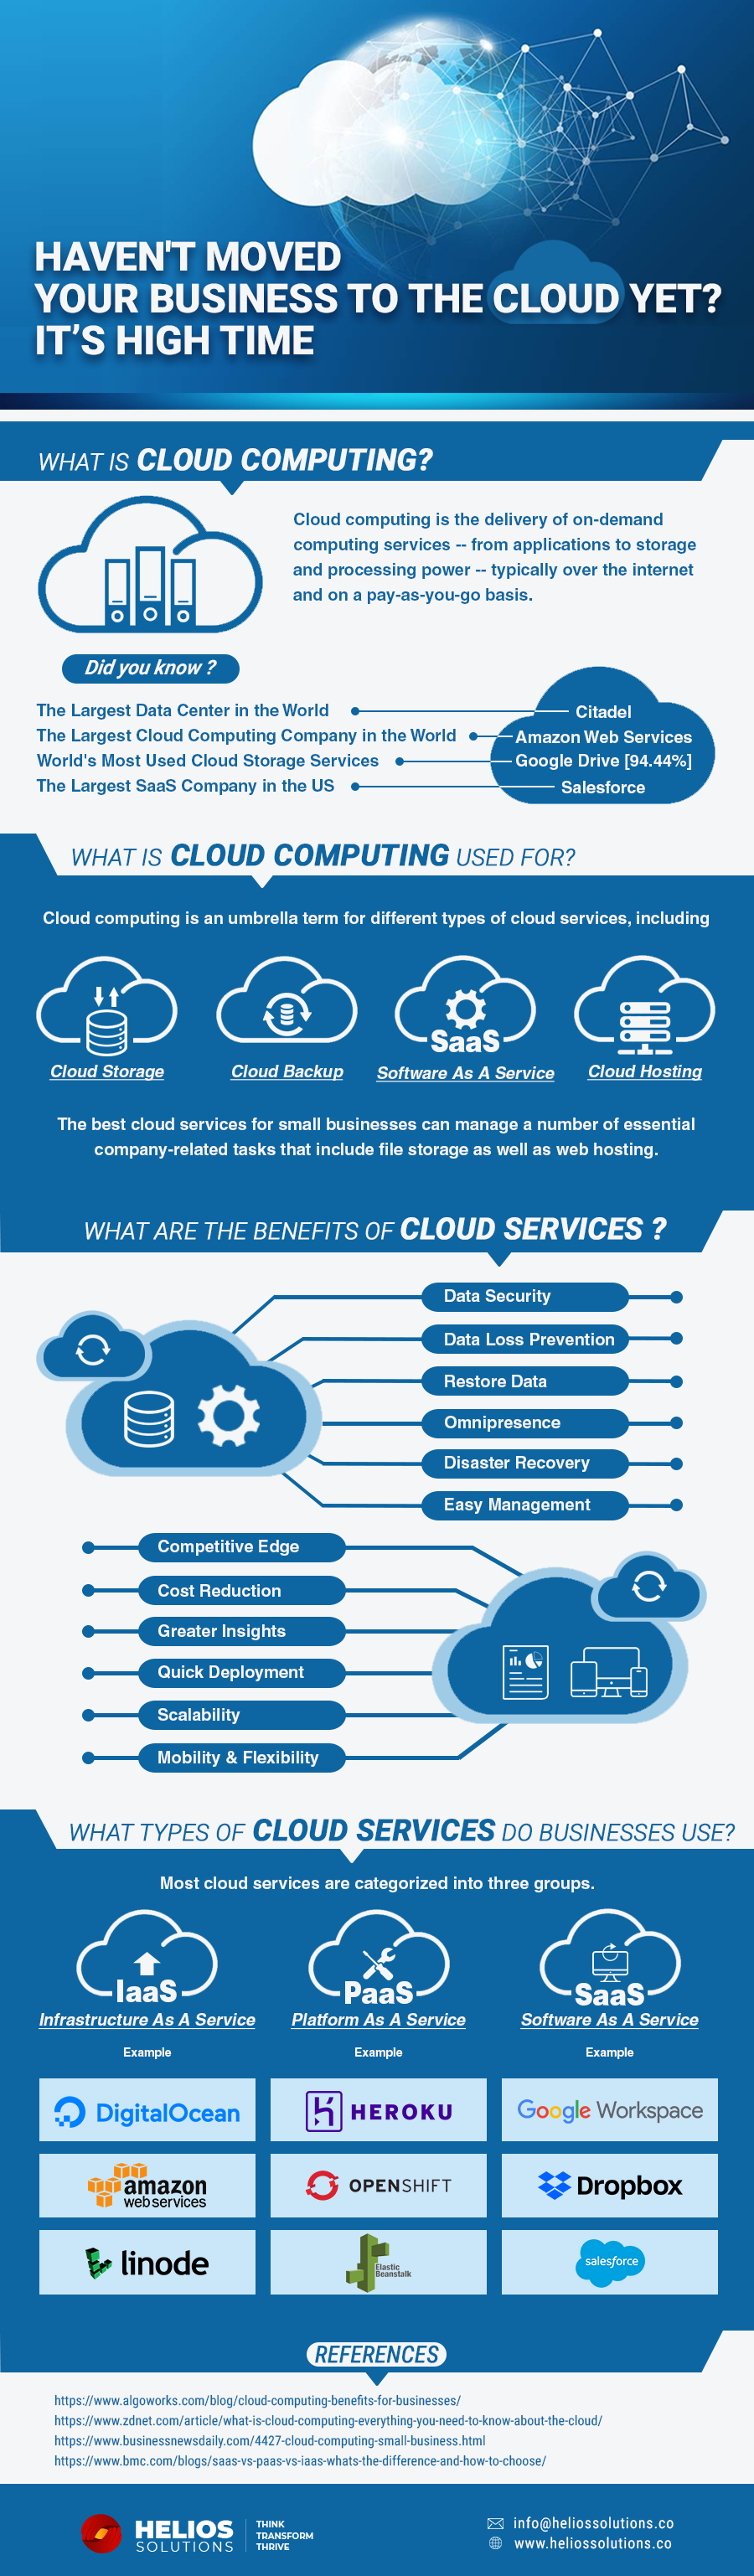 Haven't Moved Your Business To The Cloud Yet? It's High Time